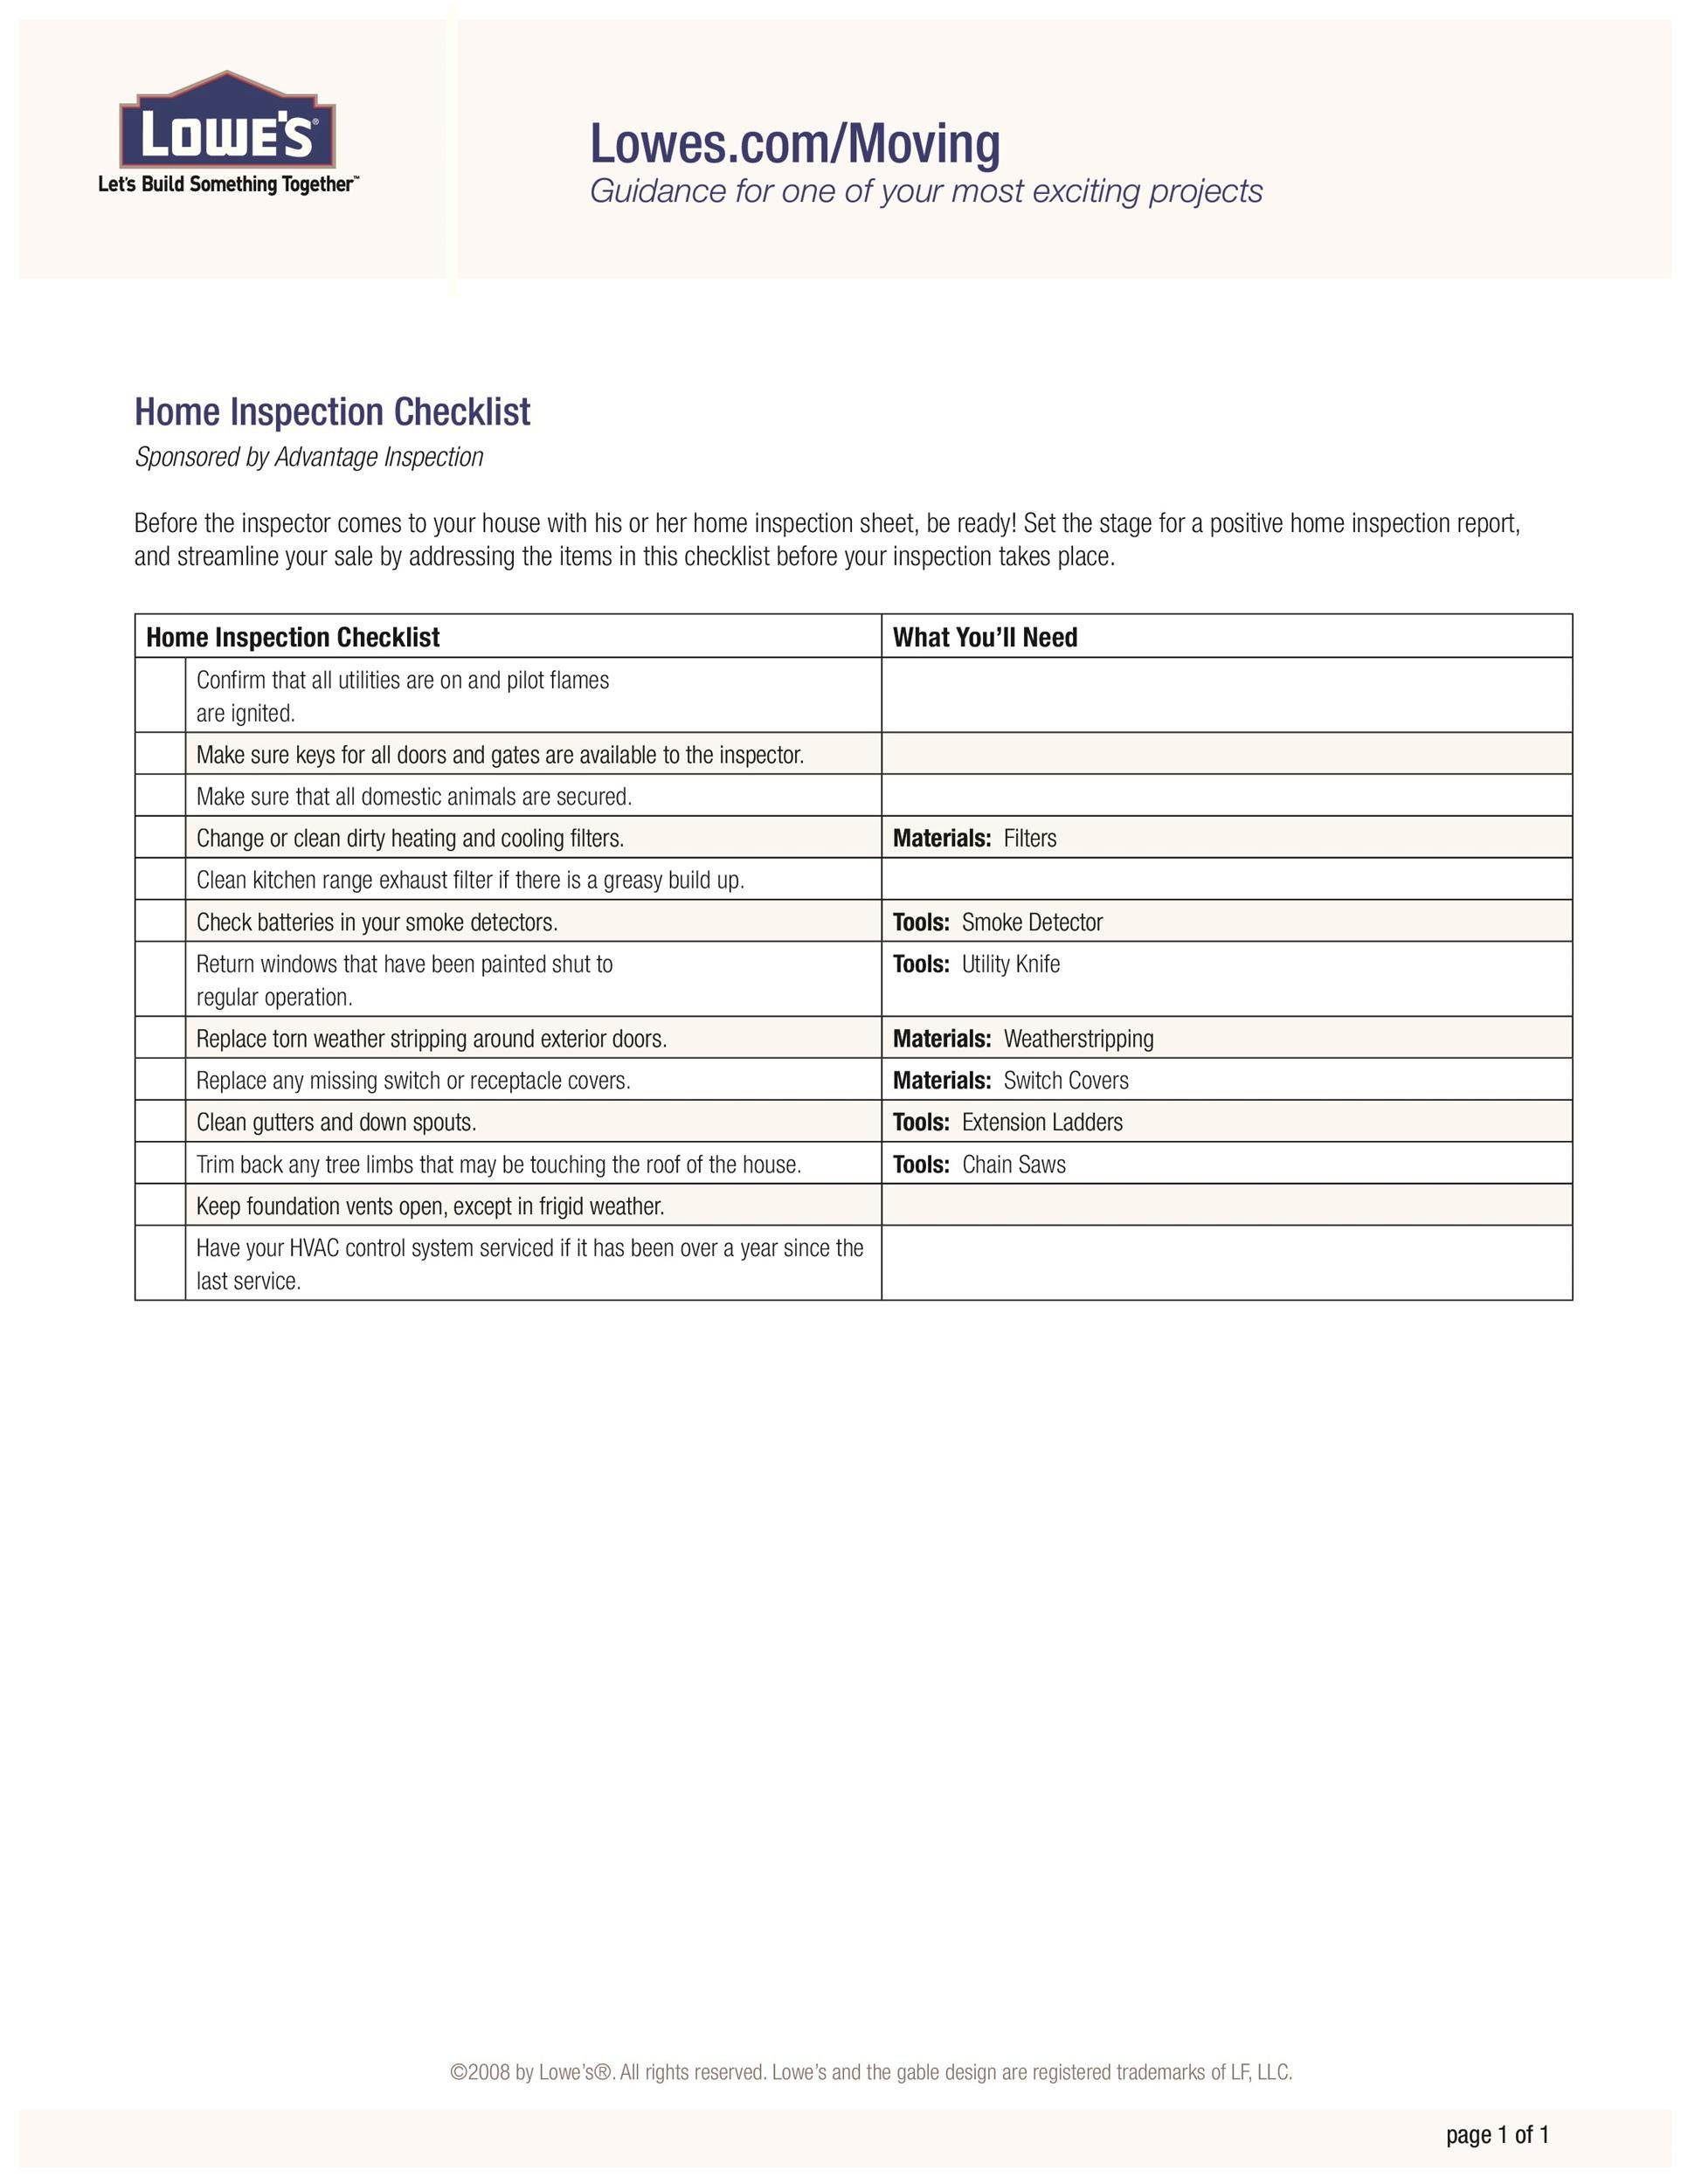 presale home inspection checklist - Ozilalmanoof